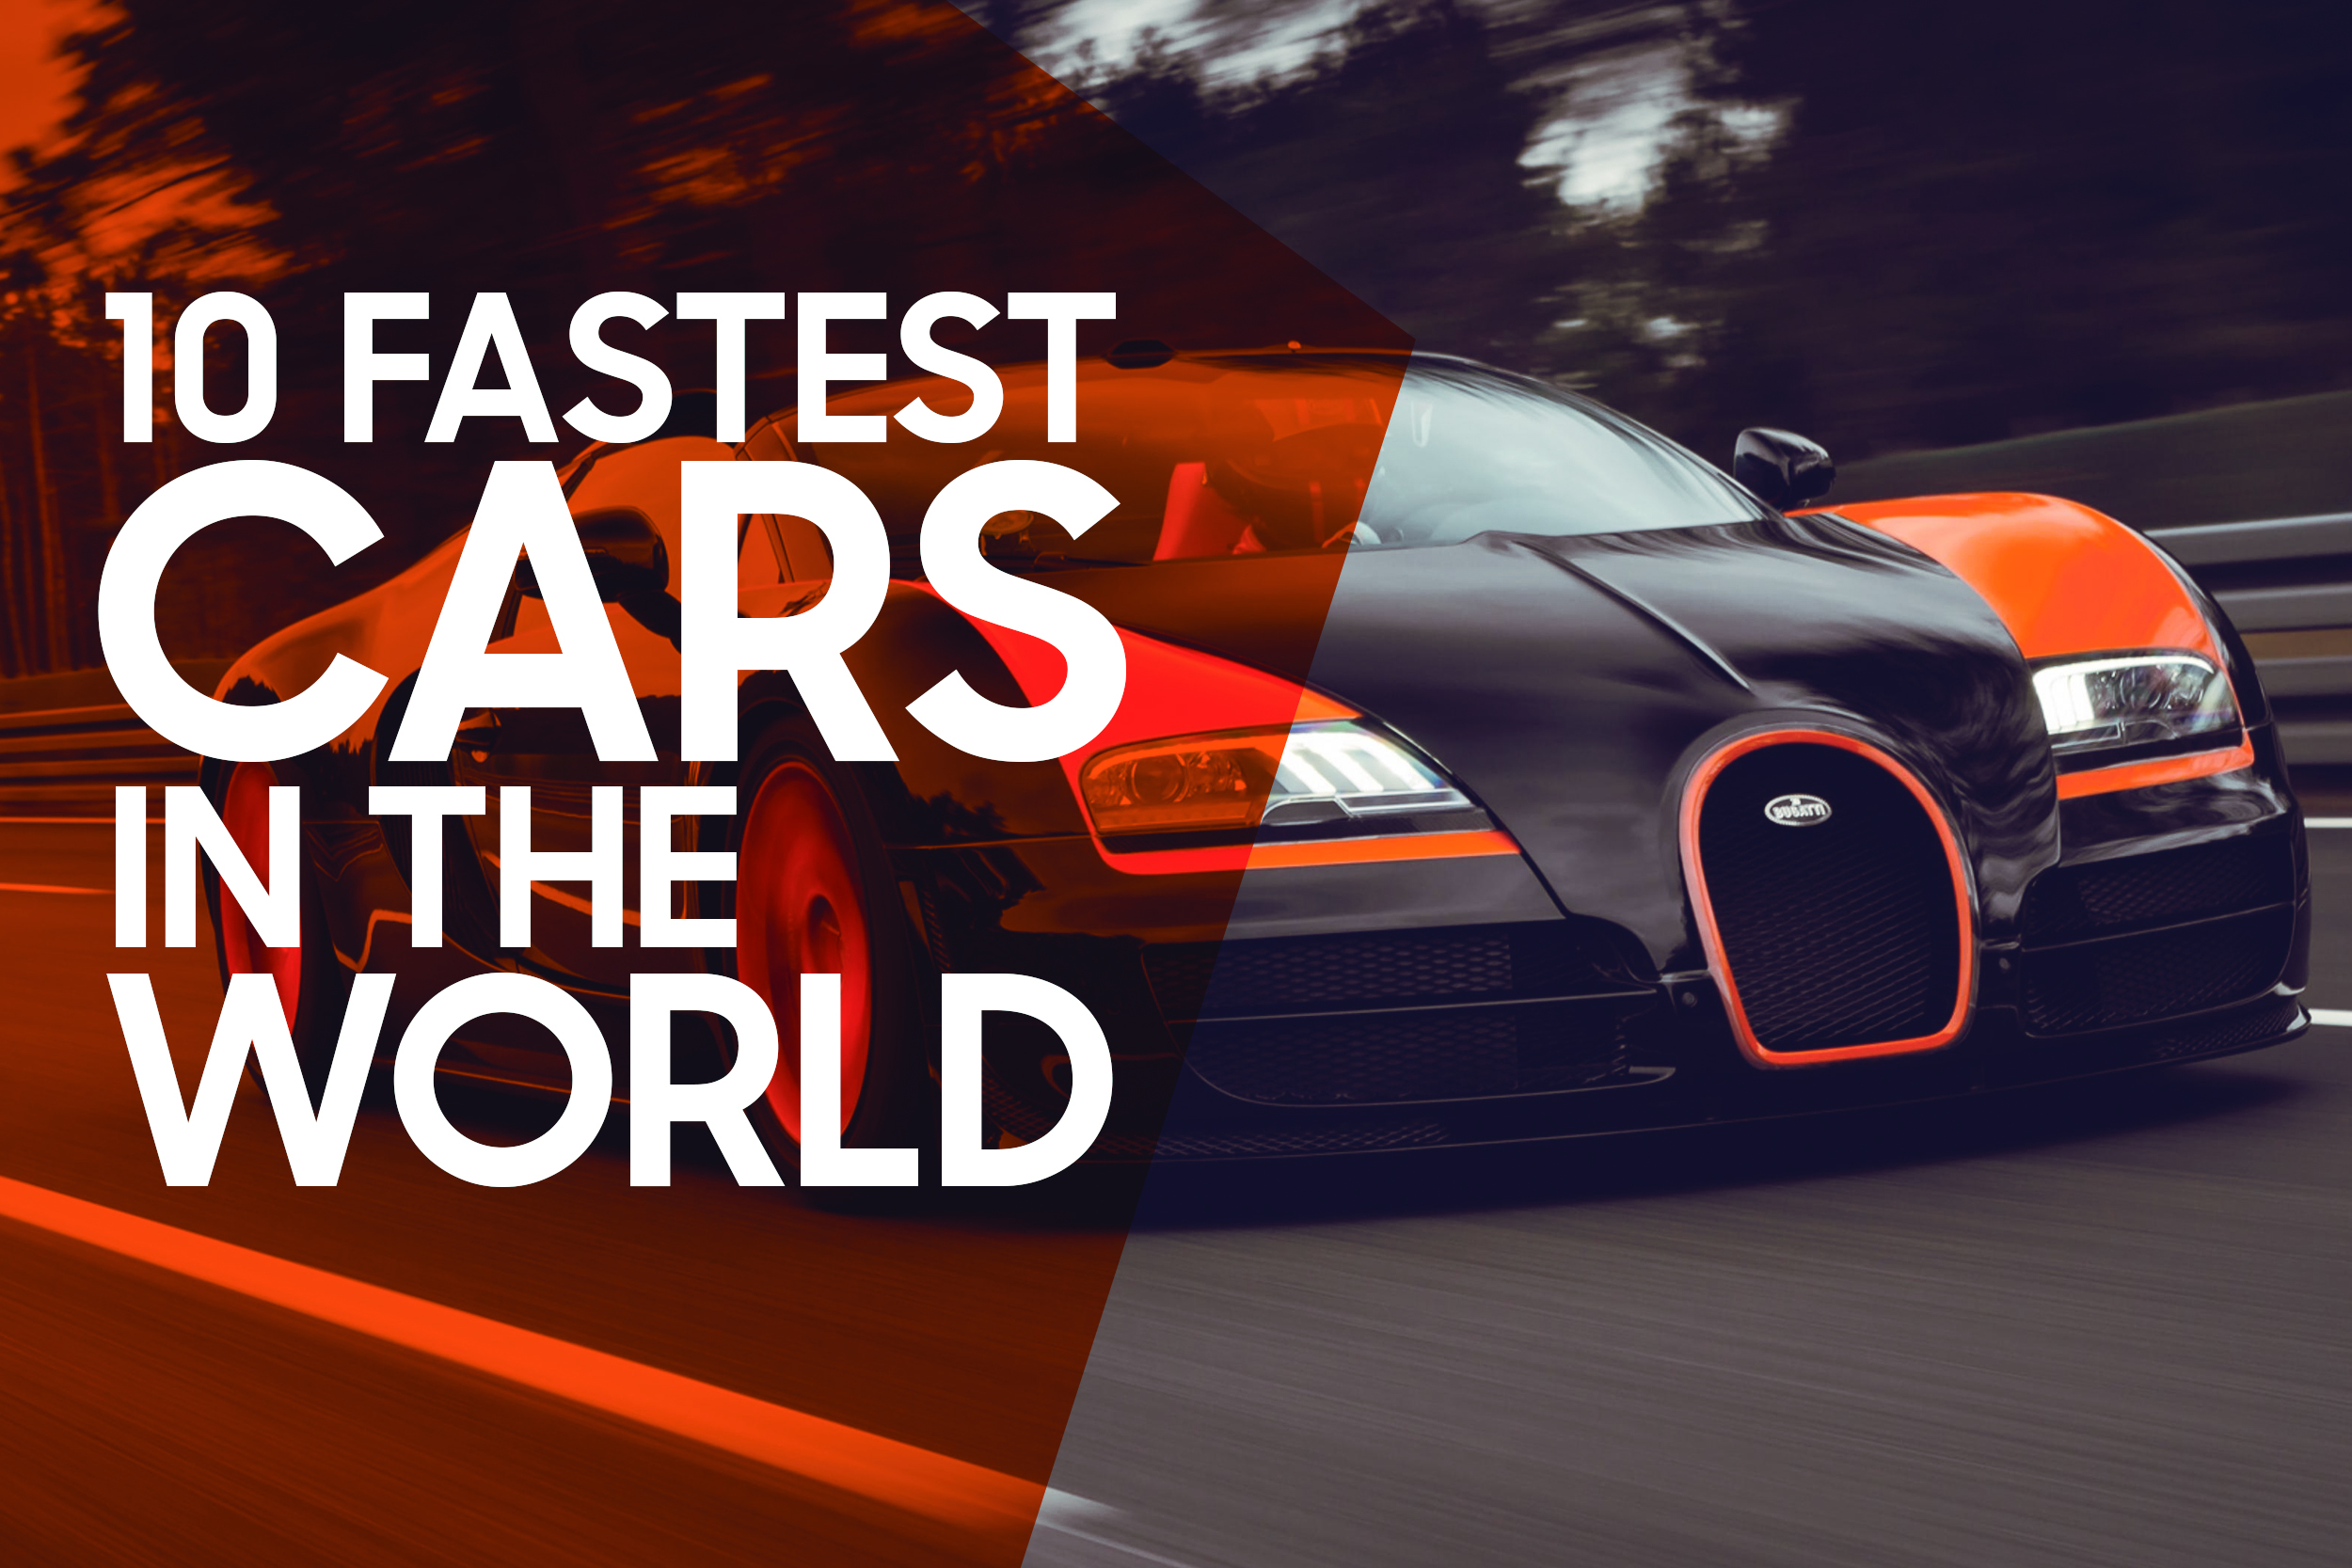 Top 10 Fastest Cars >> Top 10 Fastest Cars In The World Money Clinic